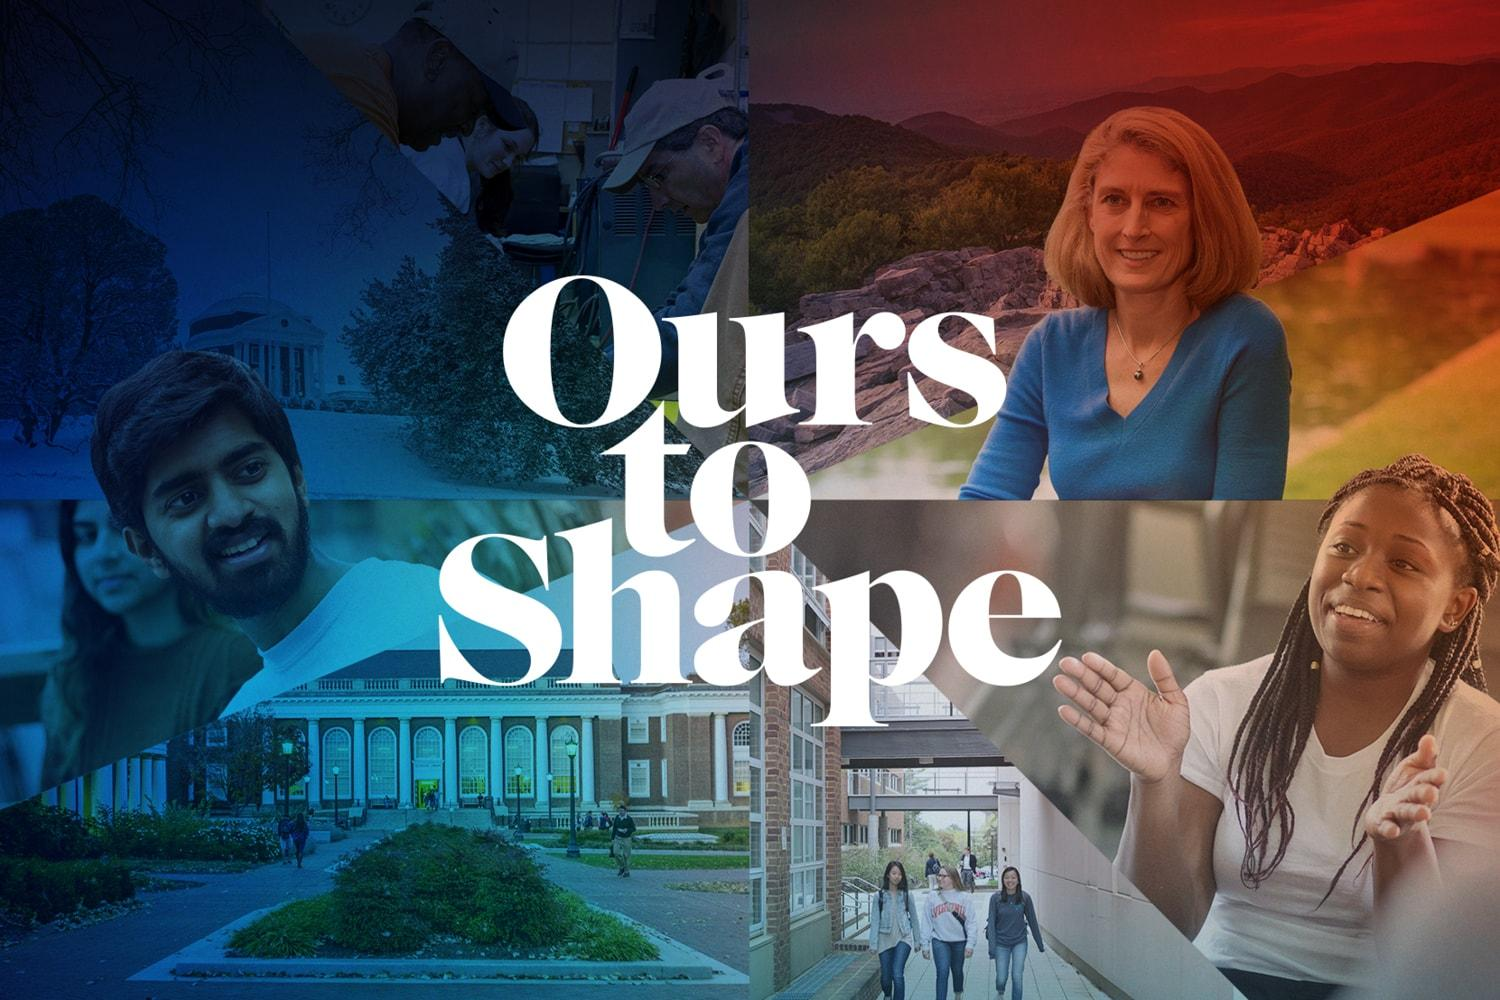 How Robust Feedback from Thousands Will Shape UVA's New Strategic Plan